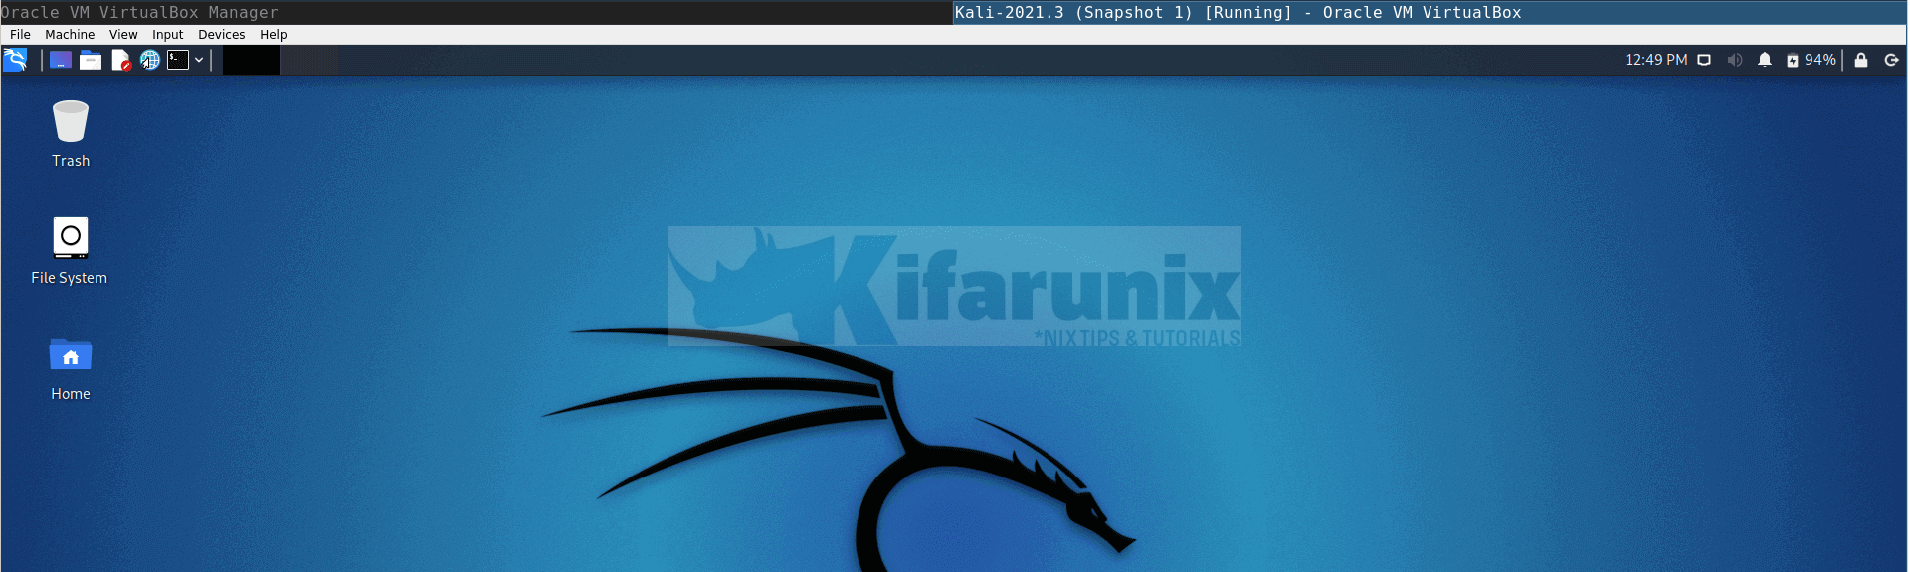 Install VirtualBox Guest Additions on Kali Linux 2021.3